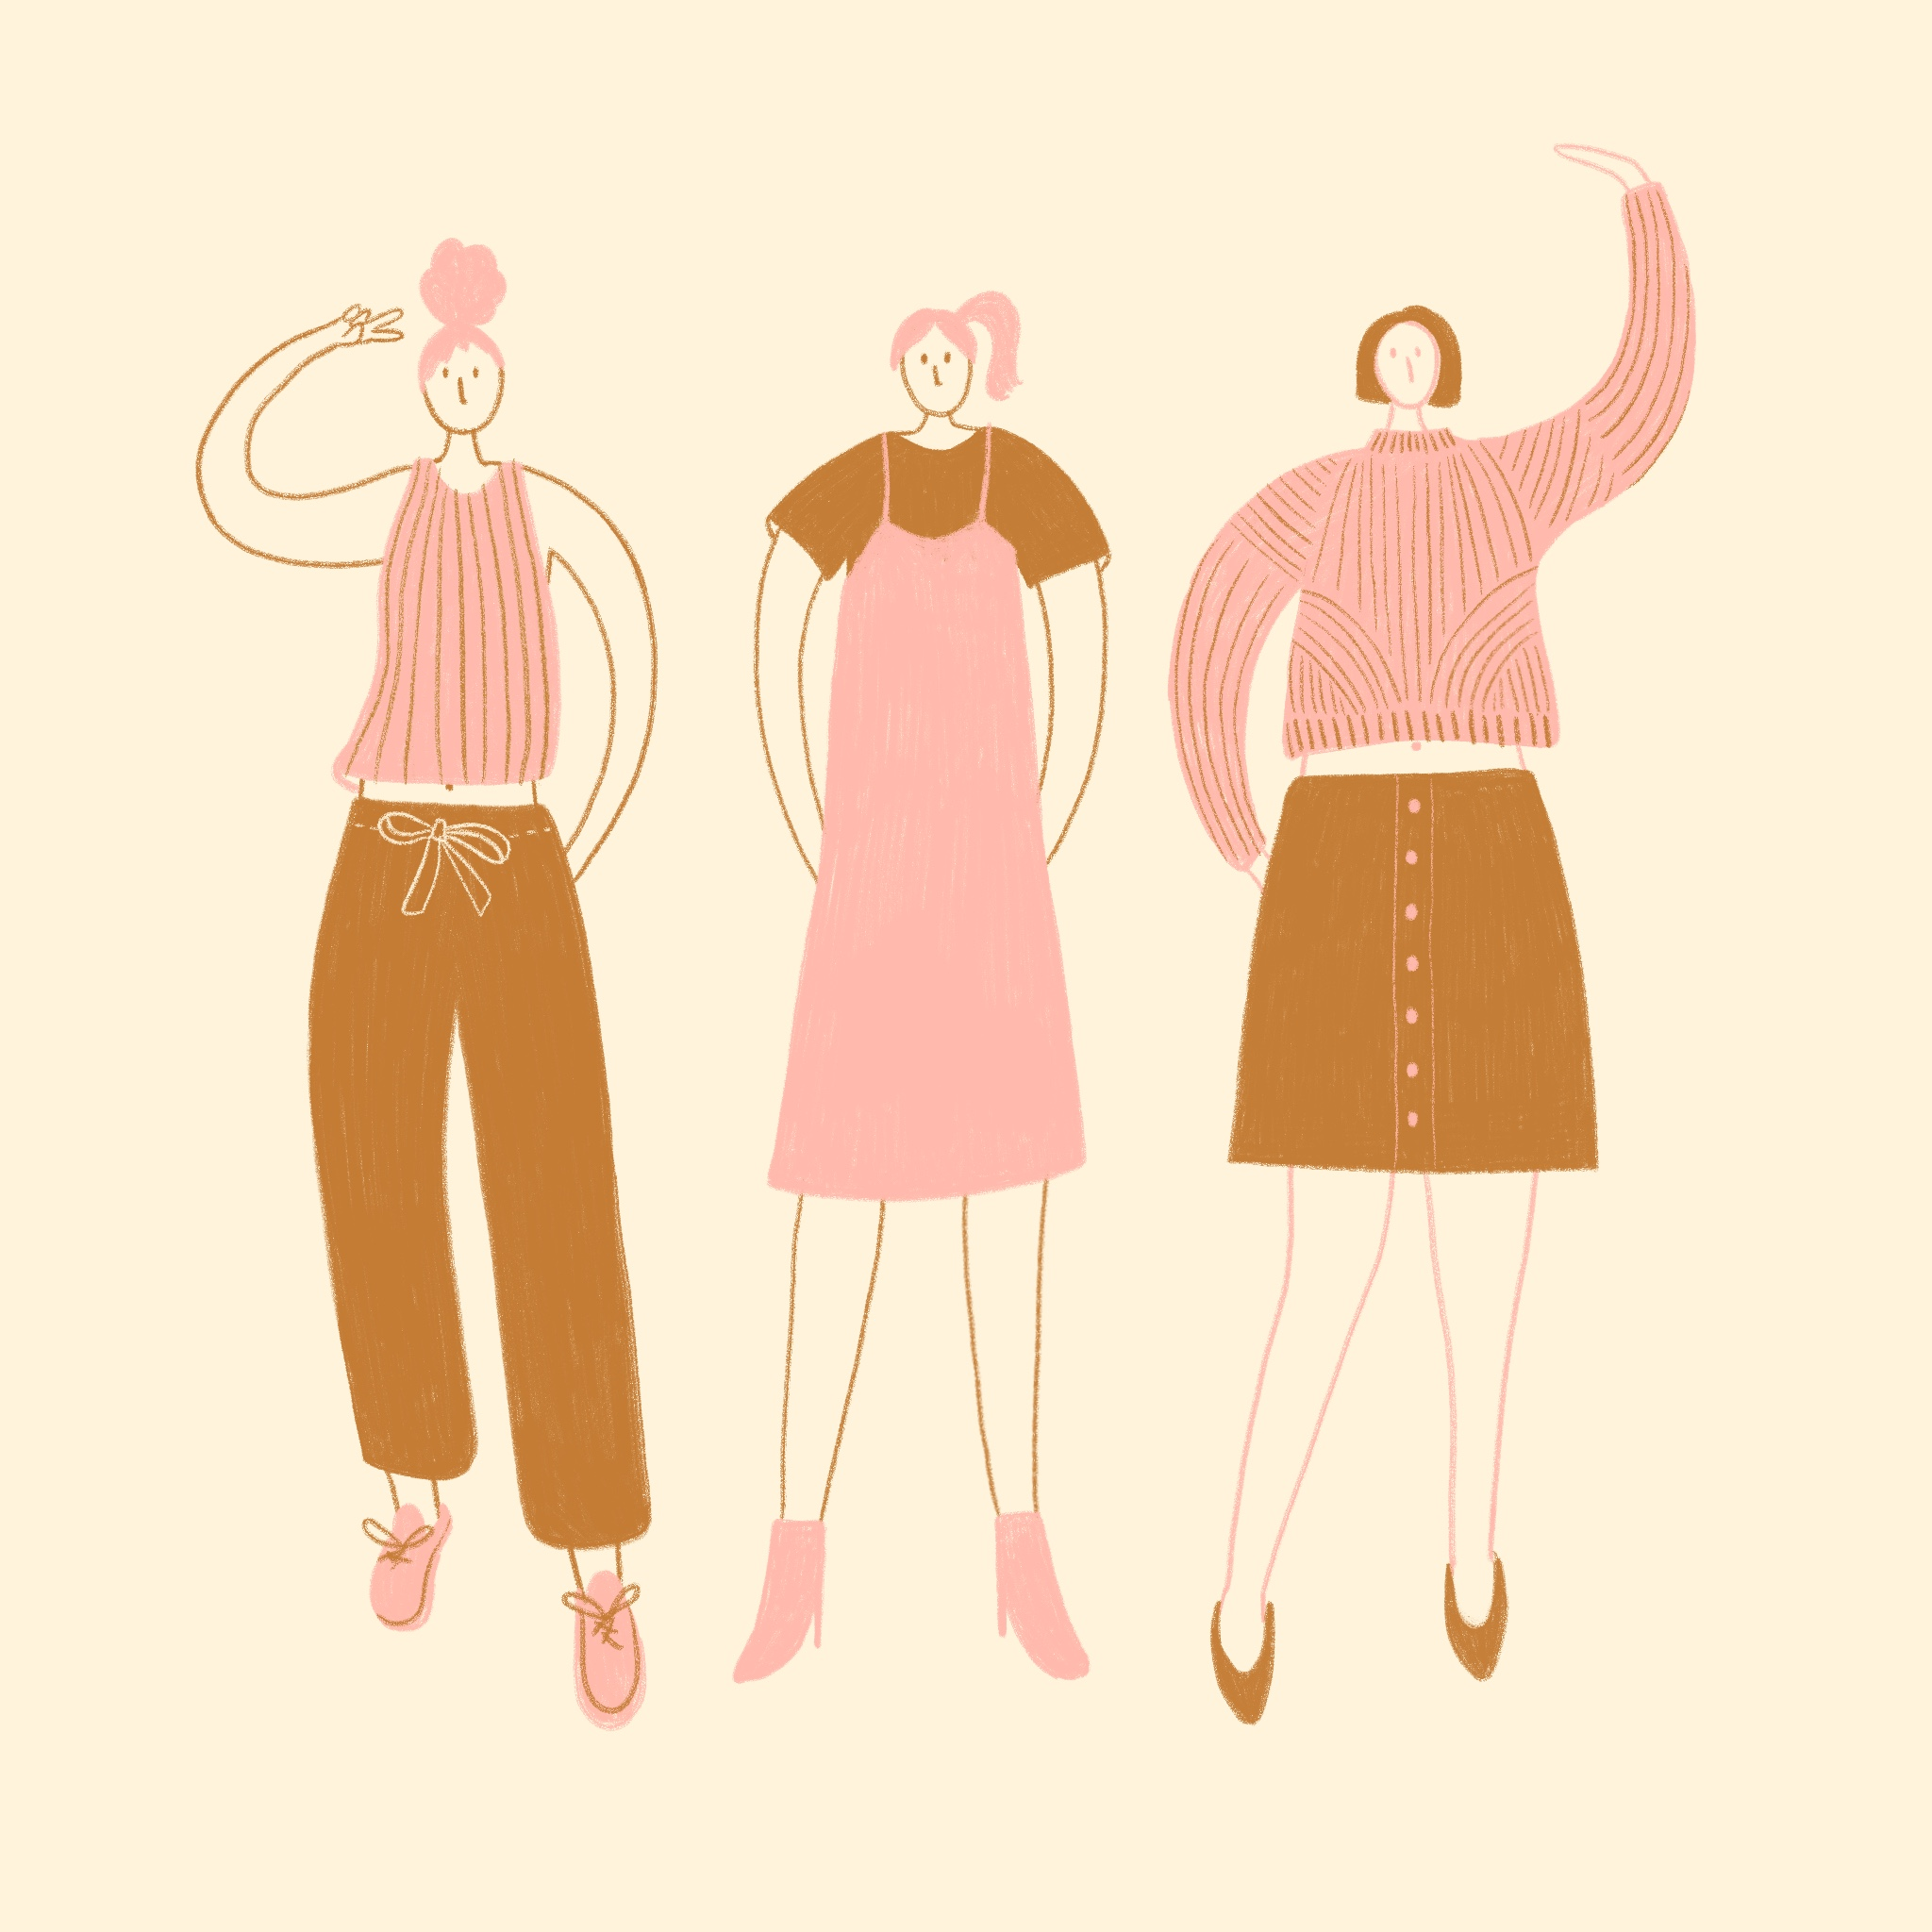 An illustration of three fashionable ladies